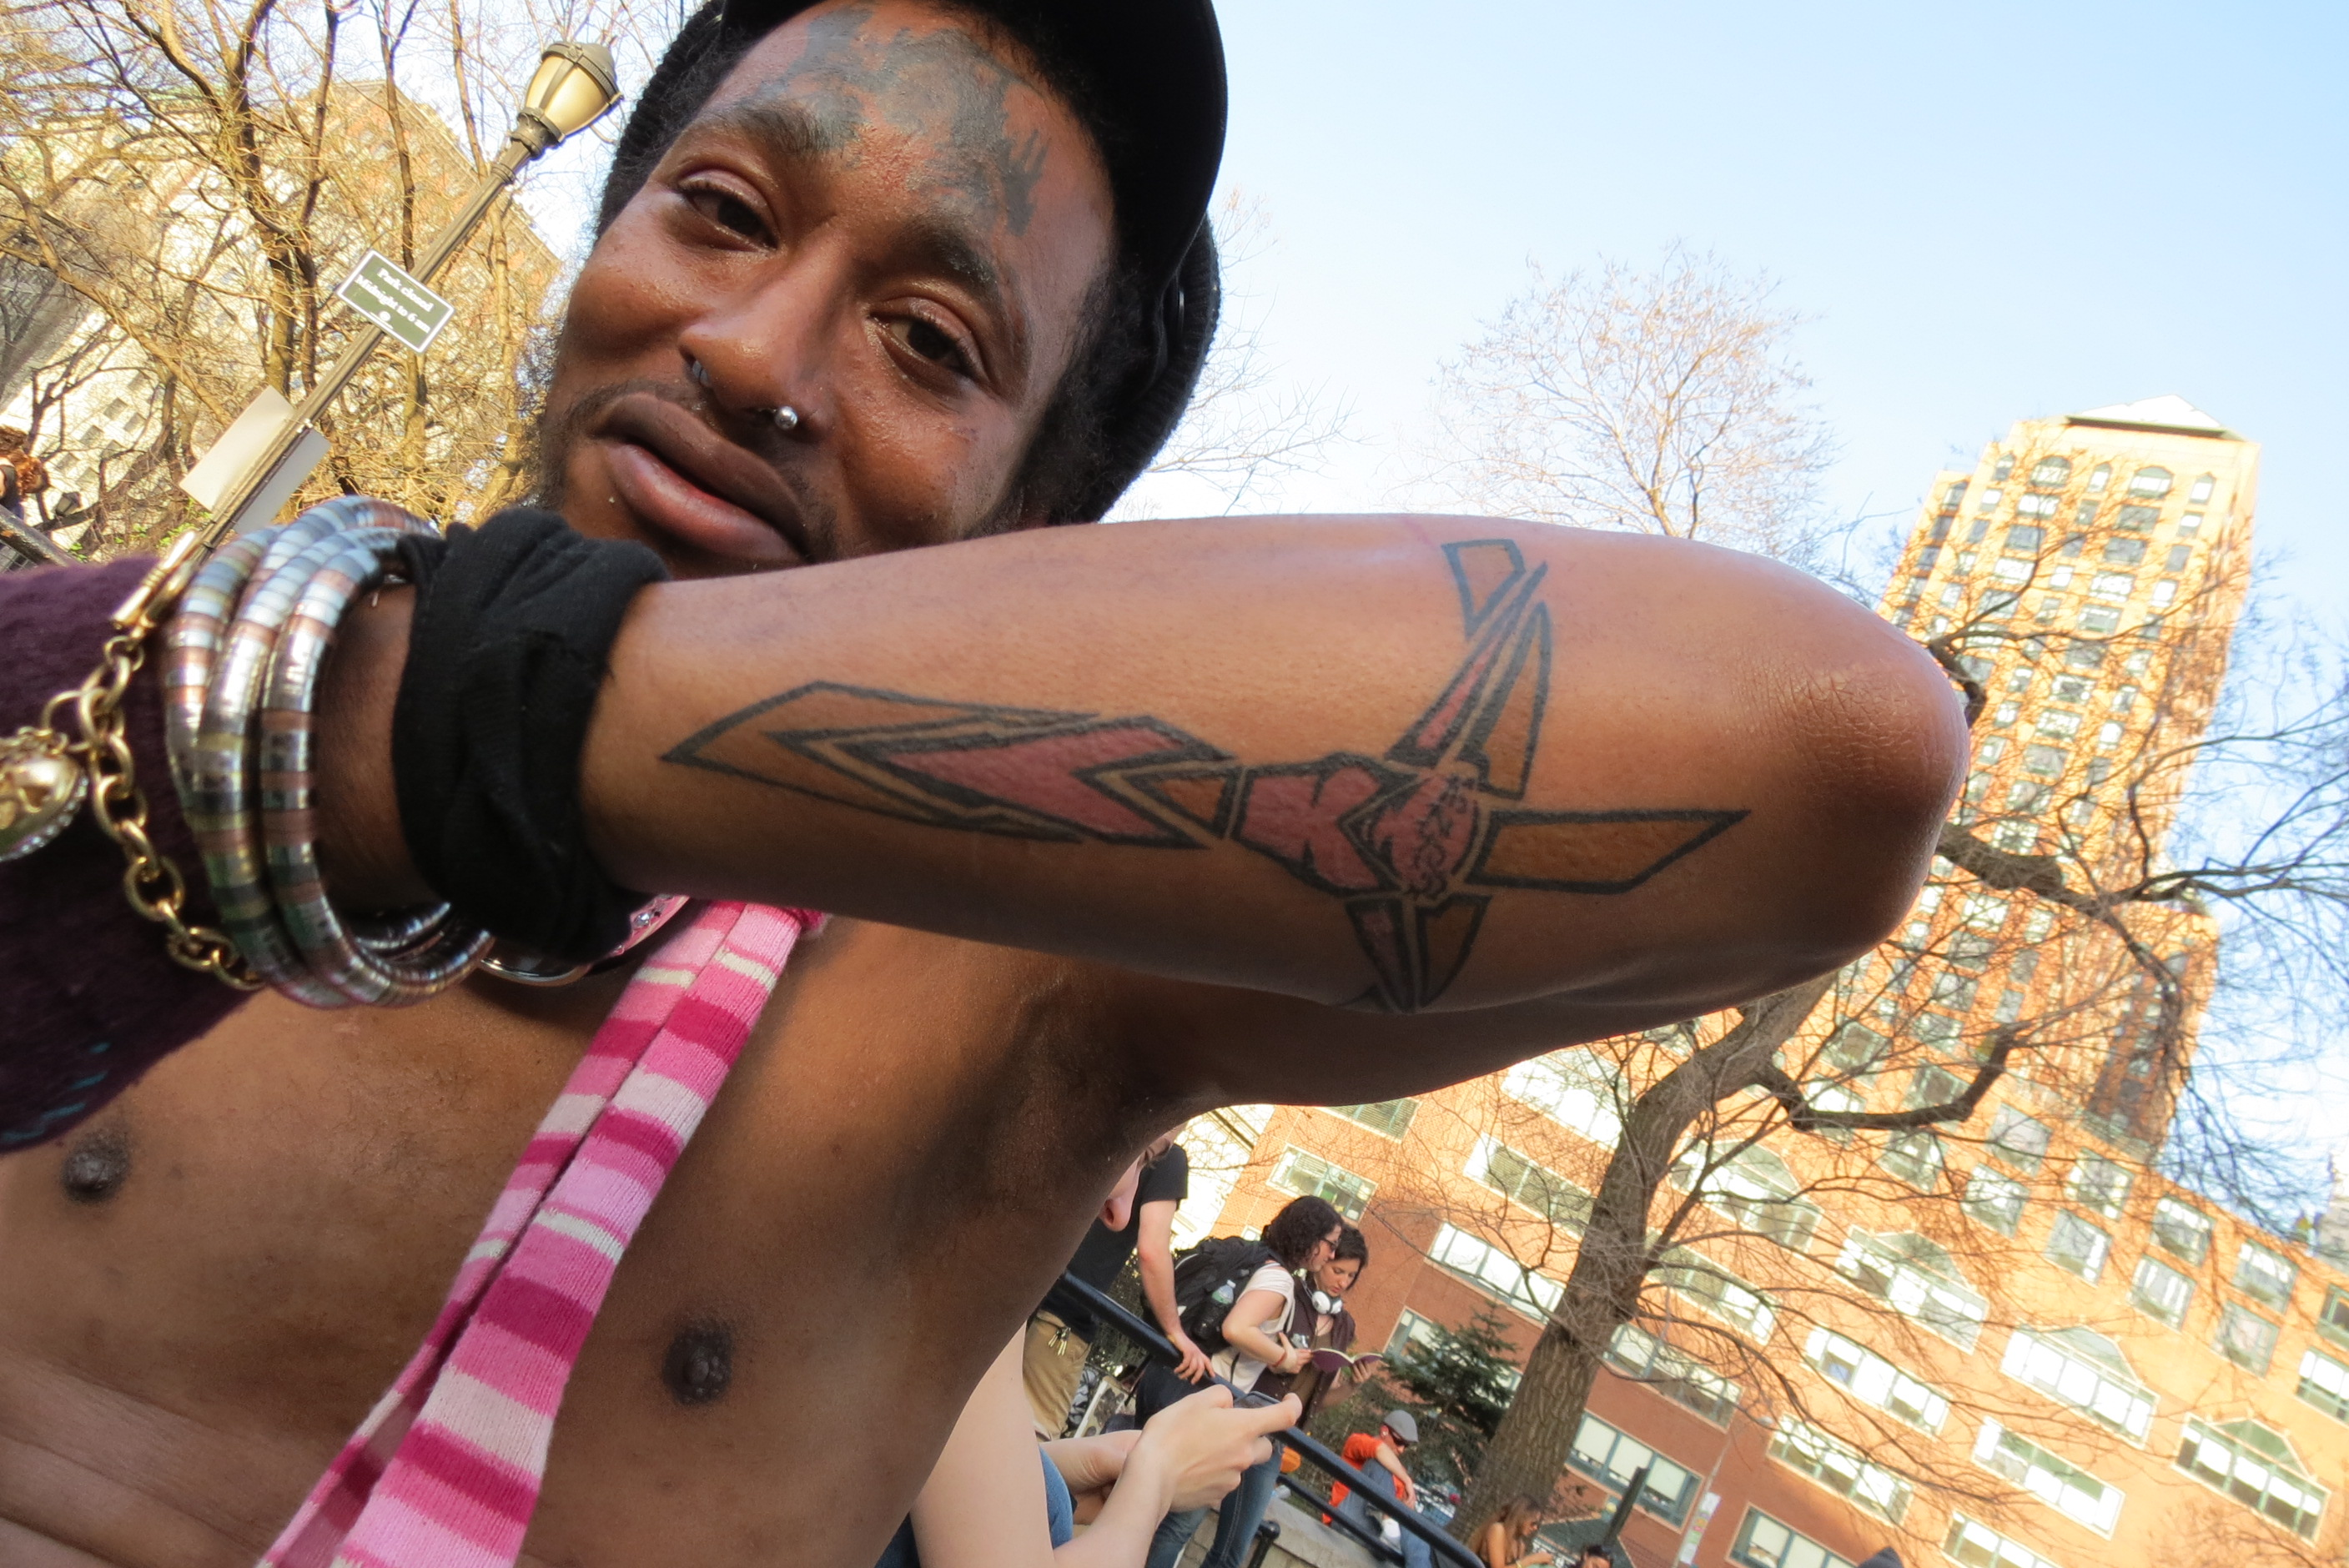 Black weird man with tattoos